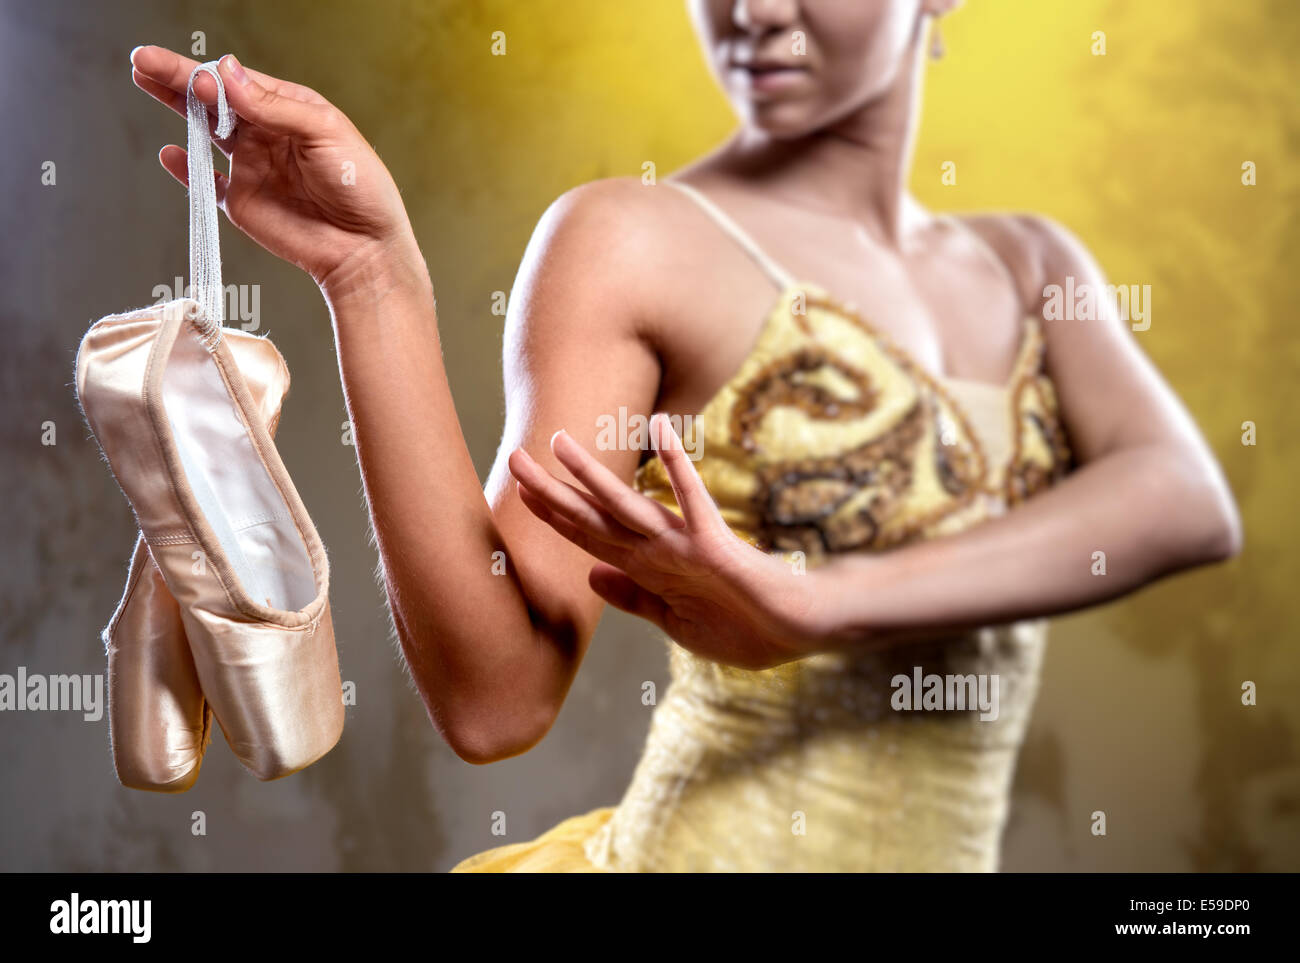 Ballerina with pointe shoes, selective focus - Stock Image